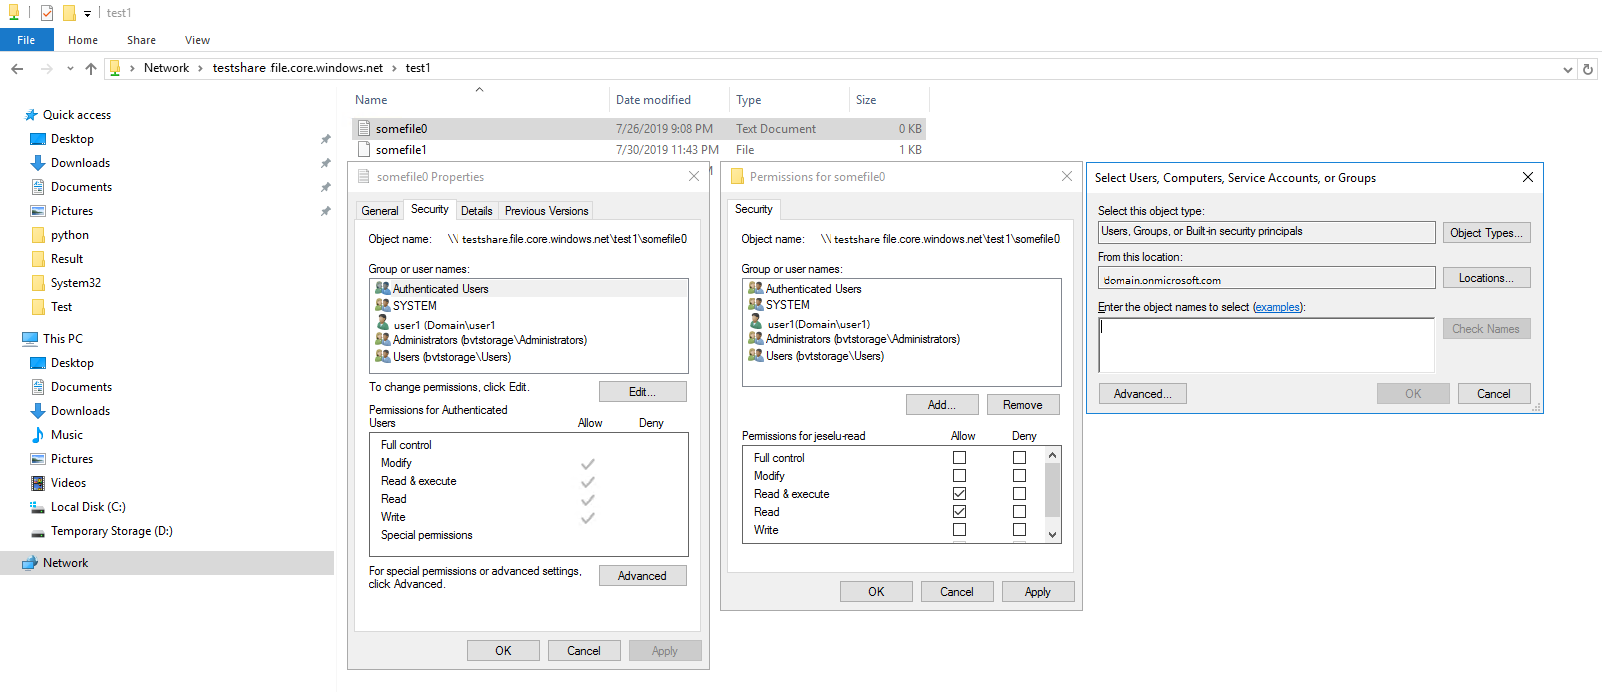 Integration with Windows File Explorer on permission assignments